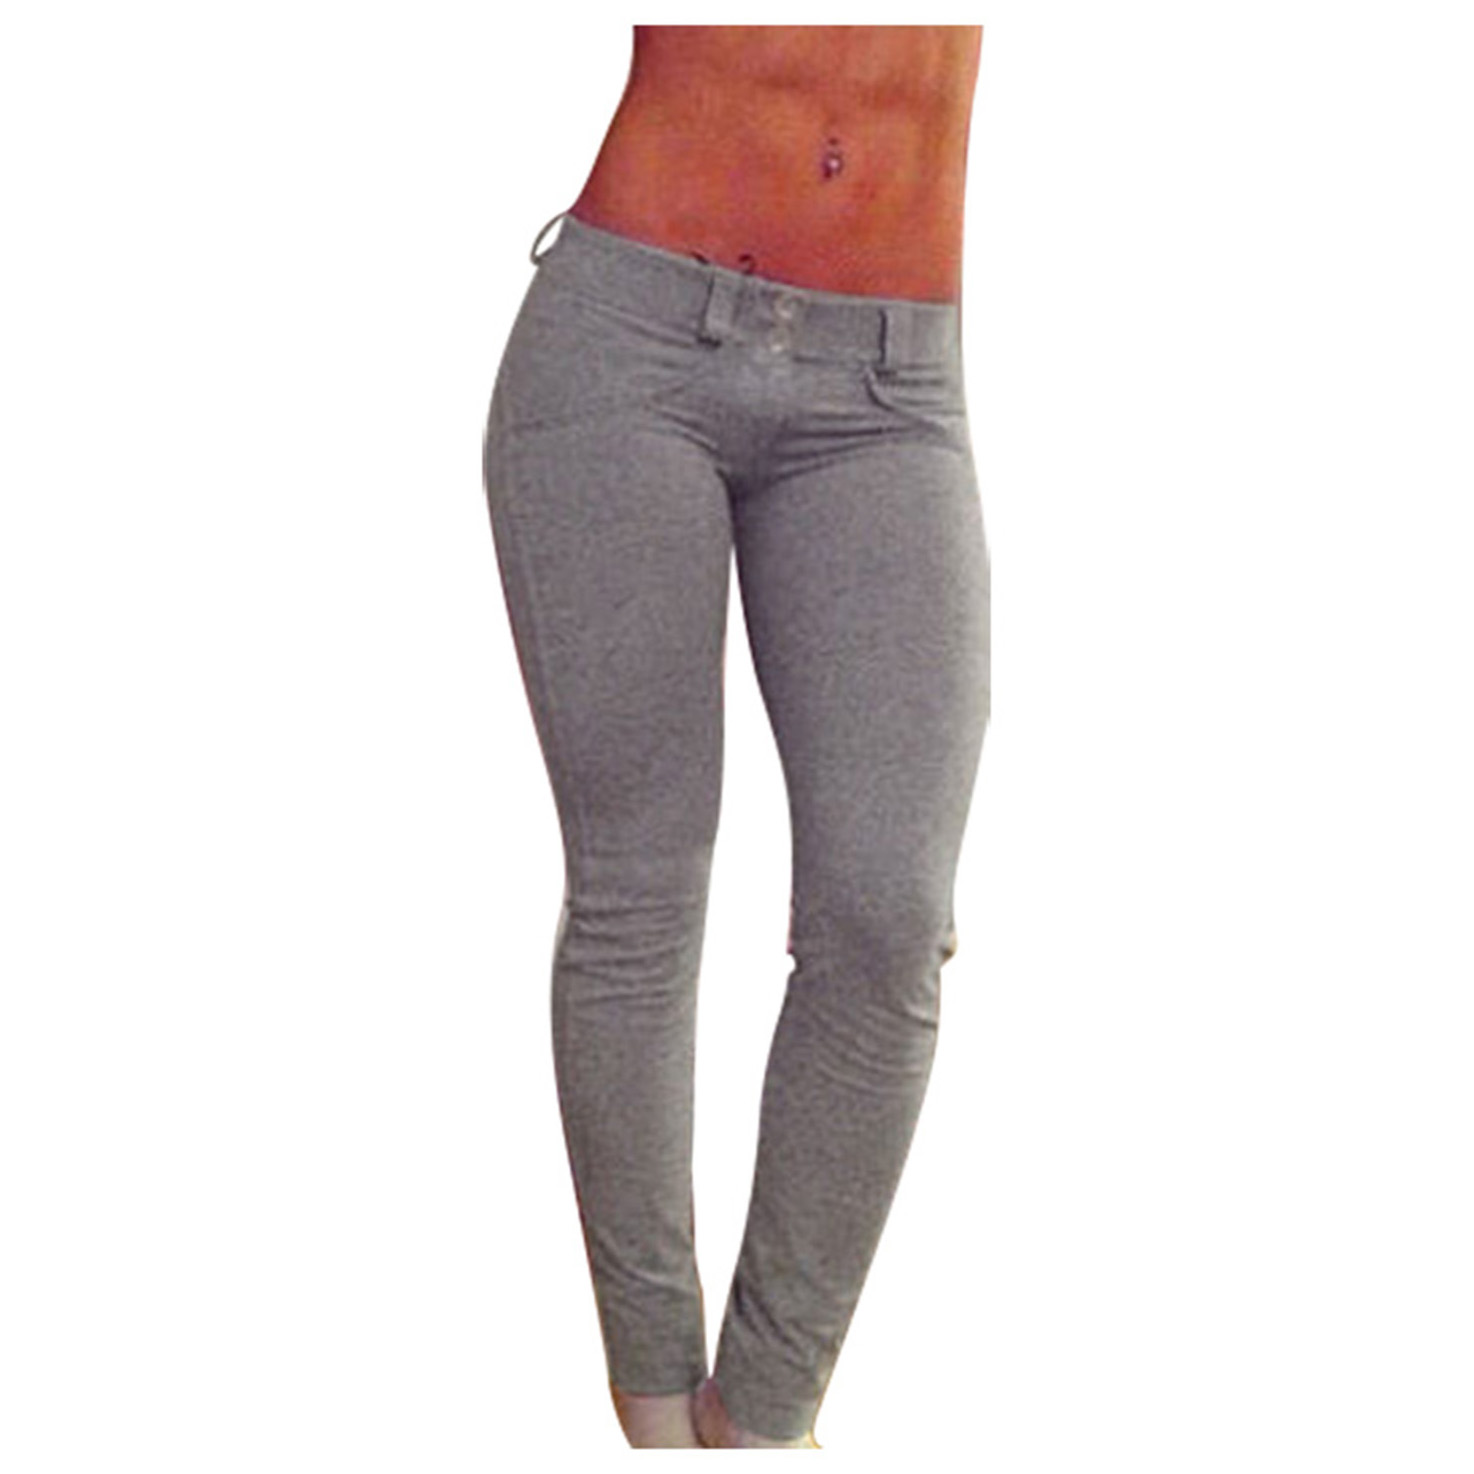 Hot Sexy Women Butt Lift Pants Colombian Brazilian Style Stretchy Skinny Pants Pencil Tight Trousers Khaki Grey Red Black